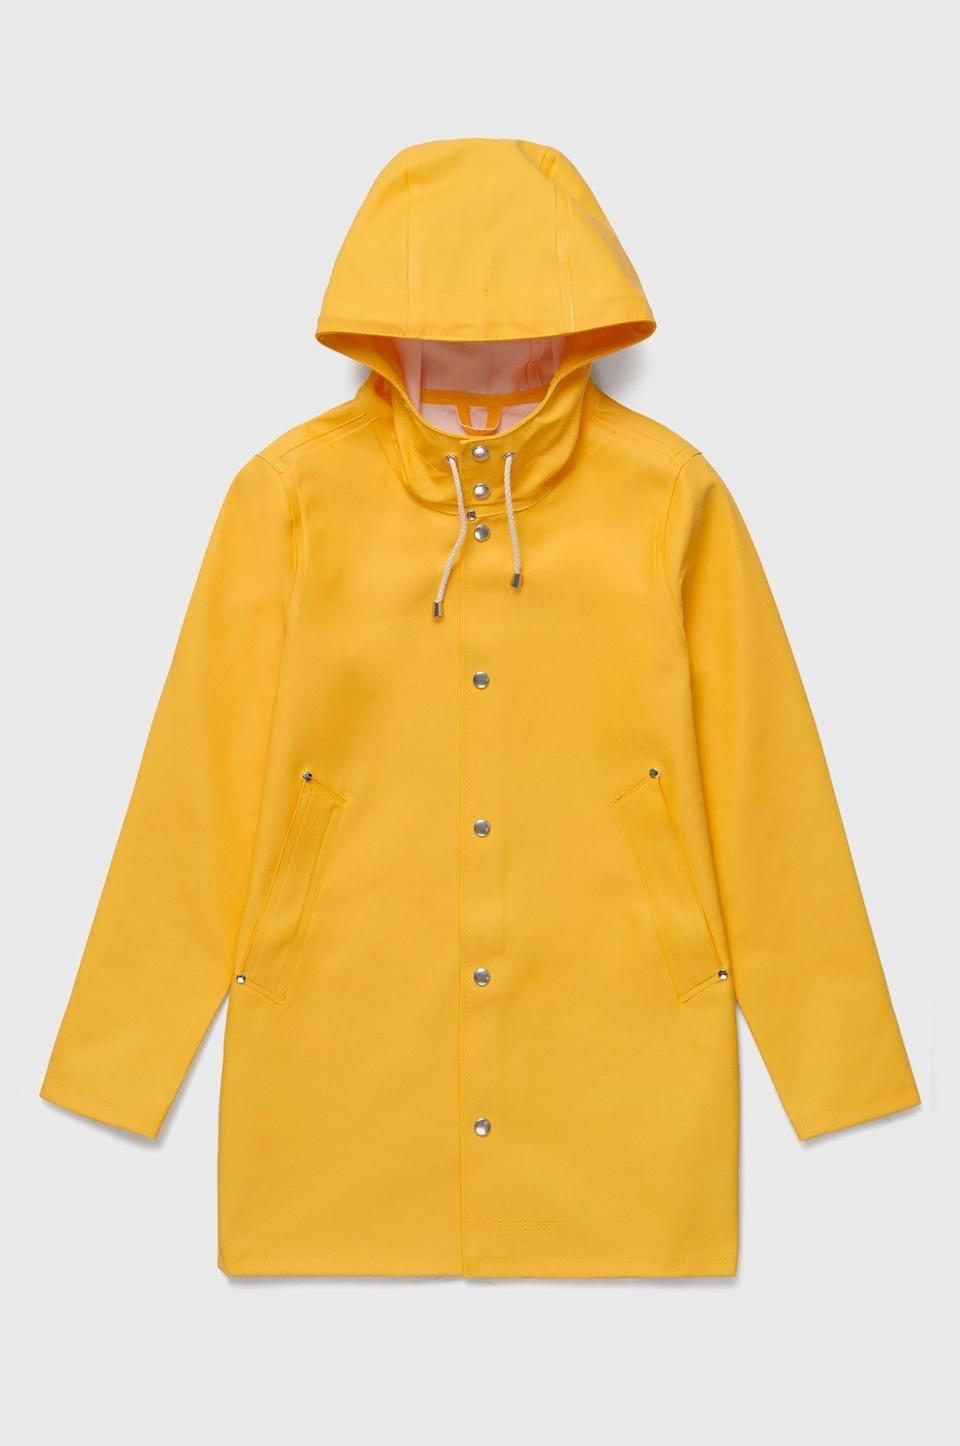 """<p><strong>Stutterheim</strong></p><p>stutterheim.com</p><p><strong>$295.00</strong></p><p><a href=""""https://go.redirectingat.com?id=74968X1596630&url=https%3A%2F%2Fstutterheim.com%2Fusa%2Fman%2Fraincoats%2Fstockholm-yellow&sref=https%3A%2F%2Fwww.townandcountrymag.com%2Fstyle%2Ffashion-trends%2Fg32622659%2Fcool-jackets-for-men%2F"""" rel=""""nofollow noopener"""" target=""""_blank"""" data-ylk=""""slk:Shop Now"""" class=""""link rapid-noclick-resp"""">Shop Now</a></p><p>This Swedish raincoat is the ultimate marriage of form and function. Stutterheim coats are made by hand using rubberized cotton, snap closures and cotton drawstrings, and come in a wide variety of striking colors and patterns. Never before has a raincoat worked so hard to keep you dry, yet looked so good doing it.</p>"""